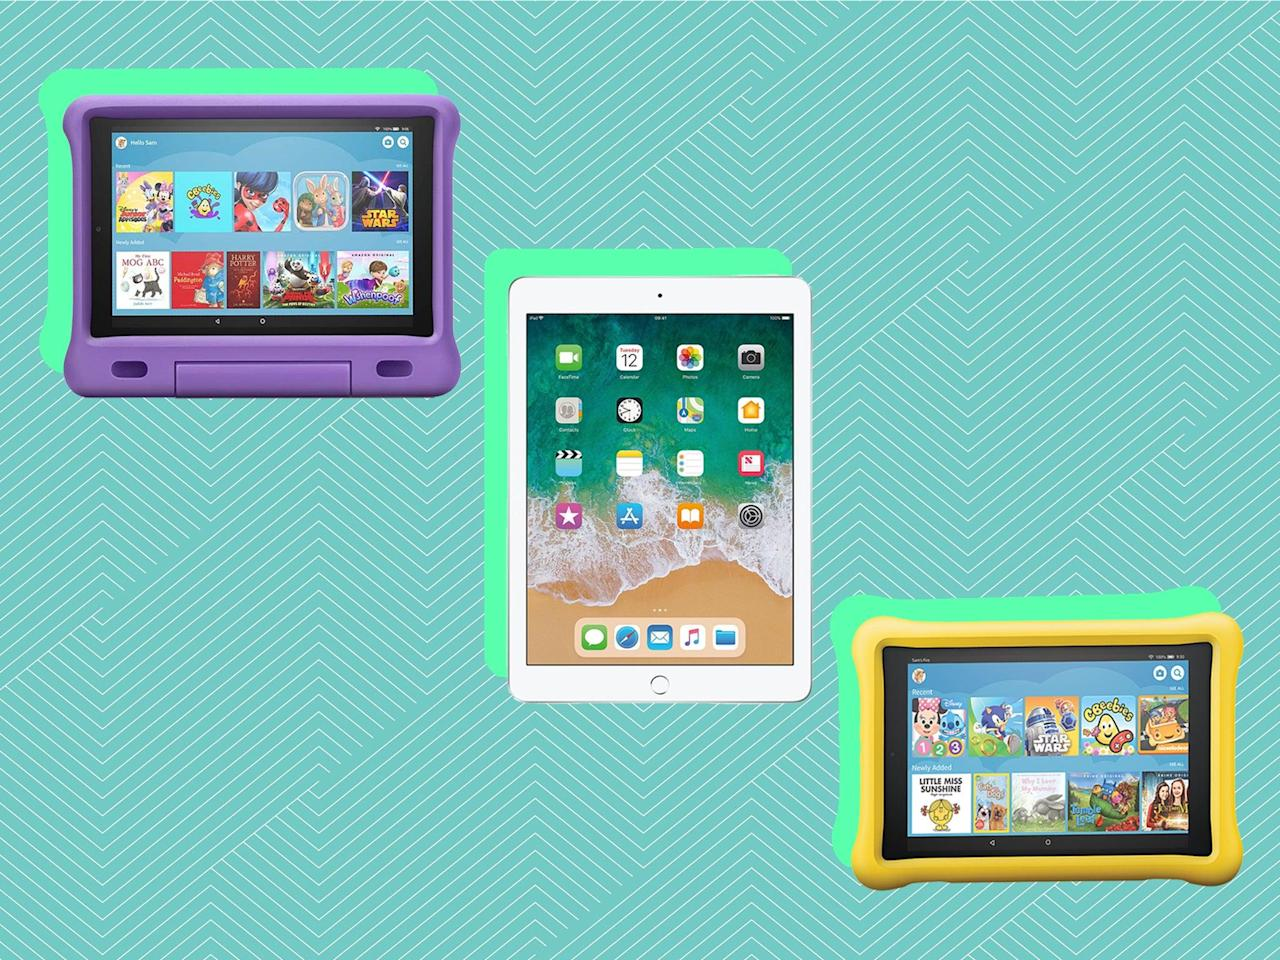 10 best kids' tablets for learning and playing games